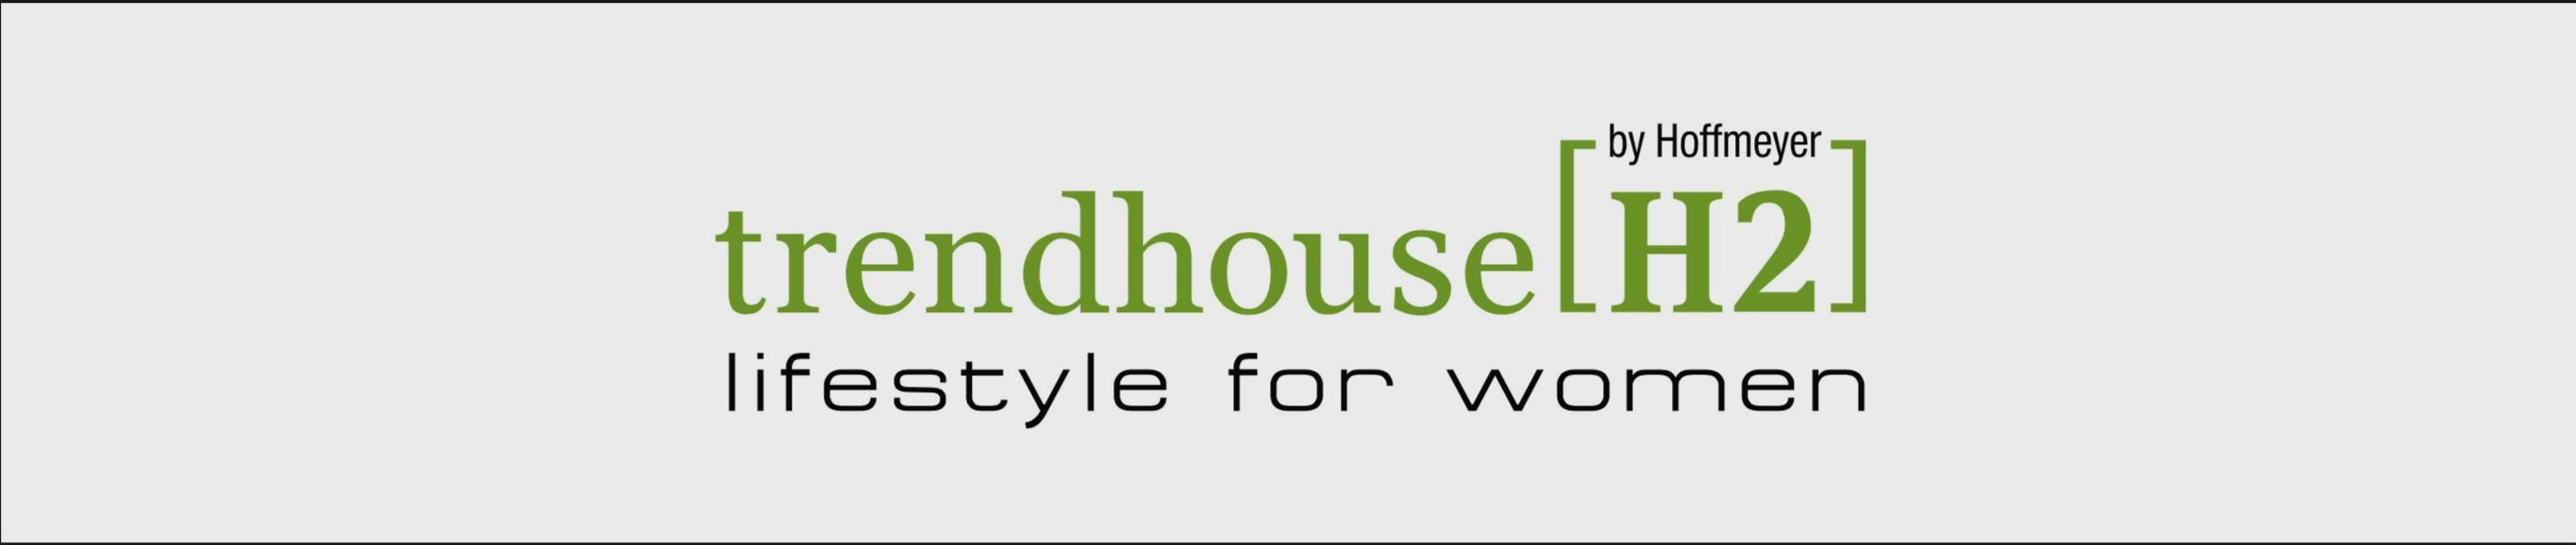 Trendhouse H2